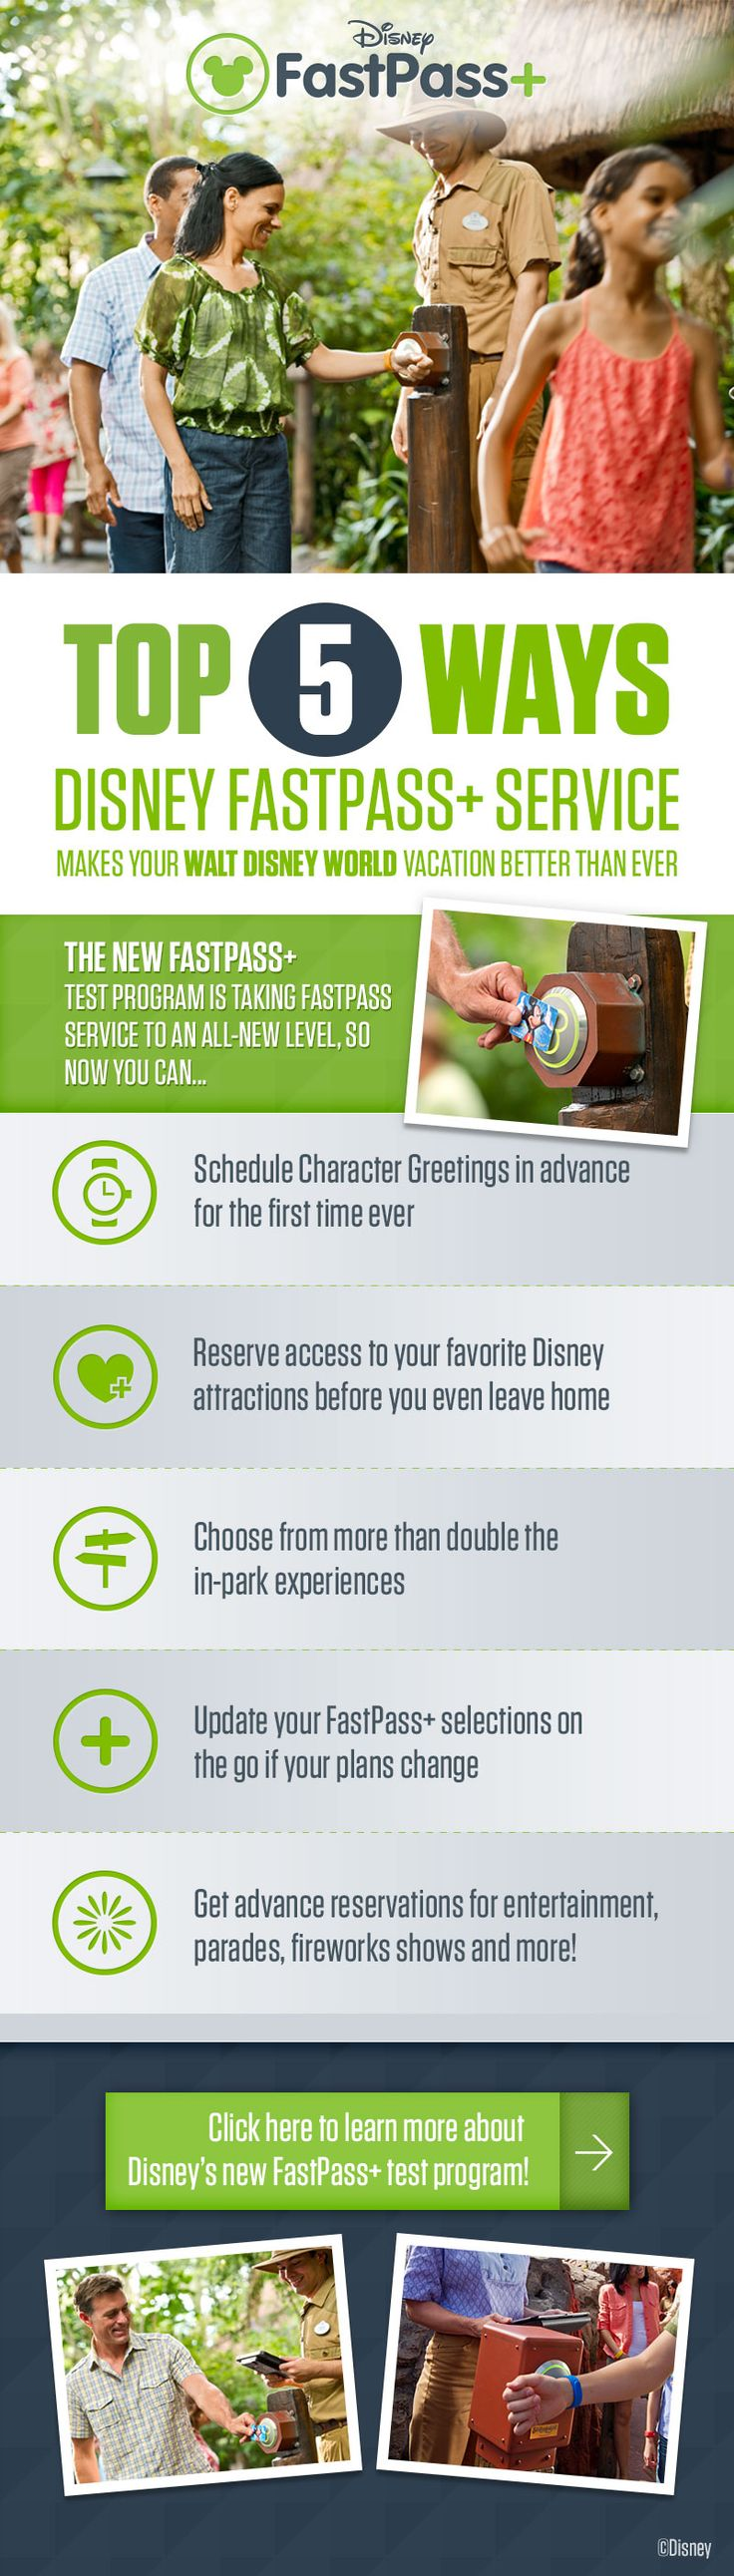 Top 5 Ways Disney FastPass Service makes your Walt Disney World vacation better than ever! #tips #tricks